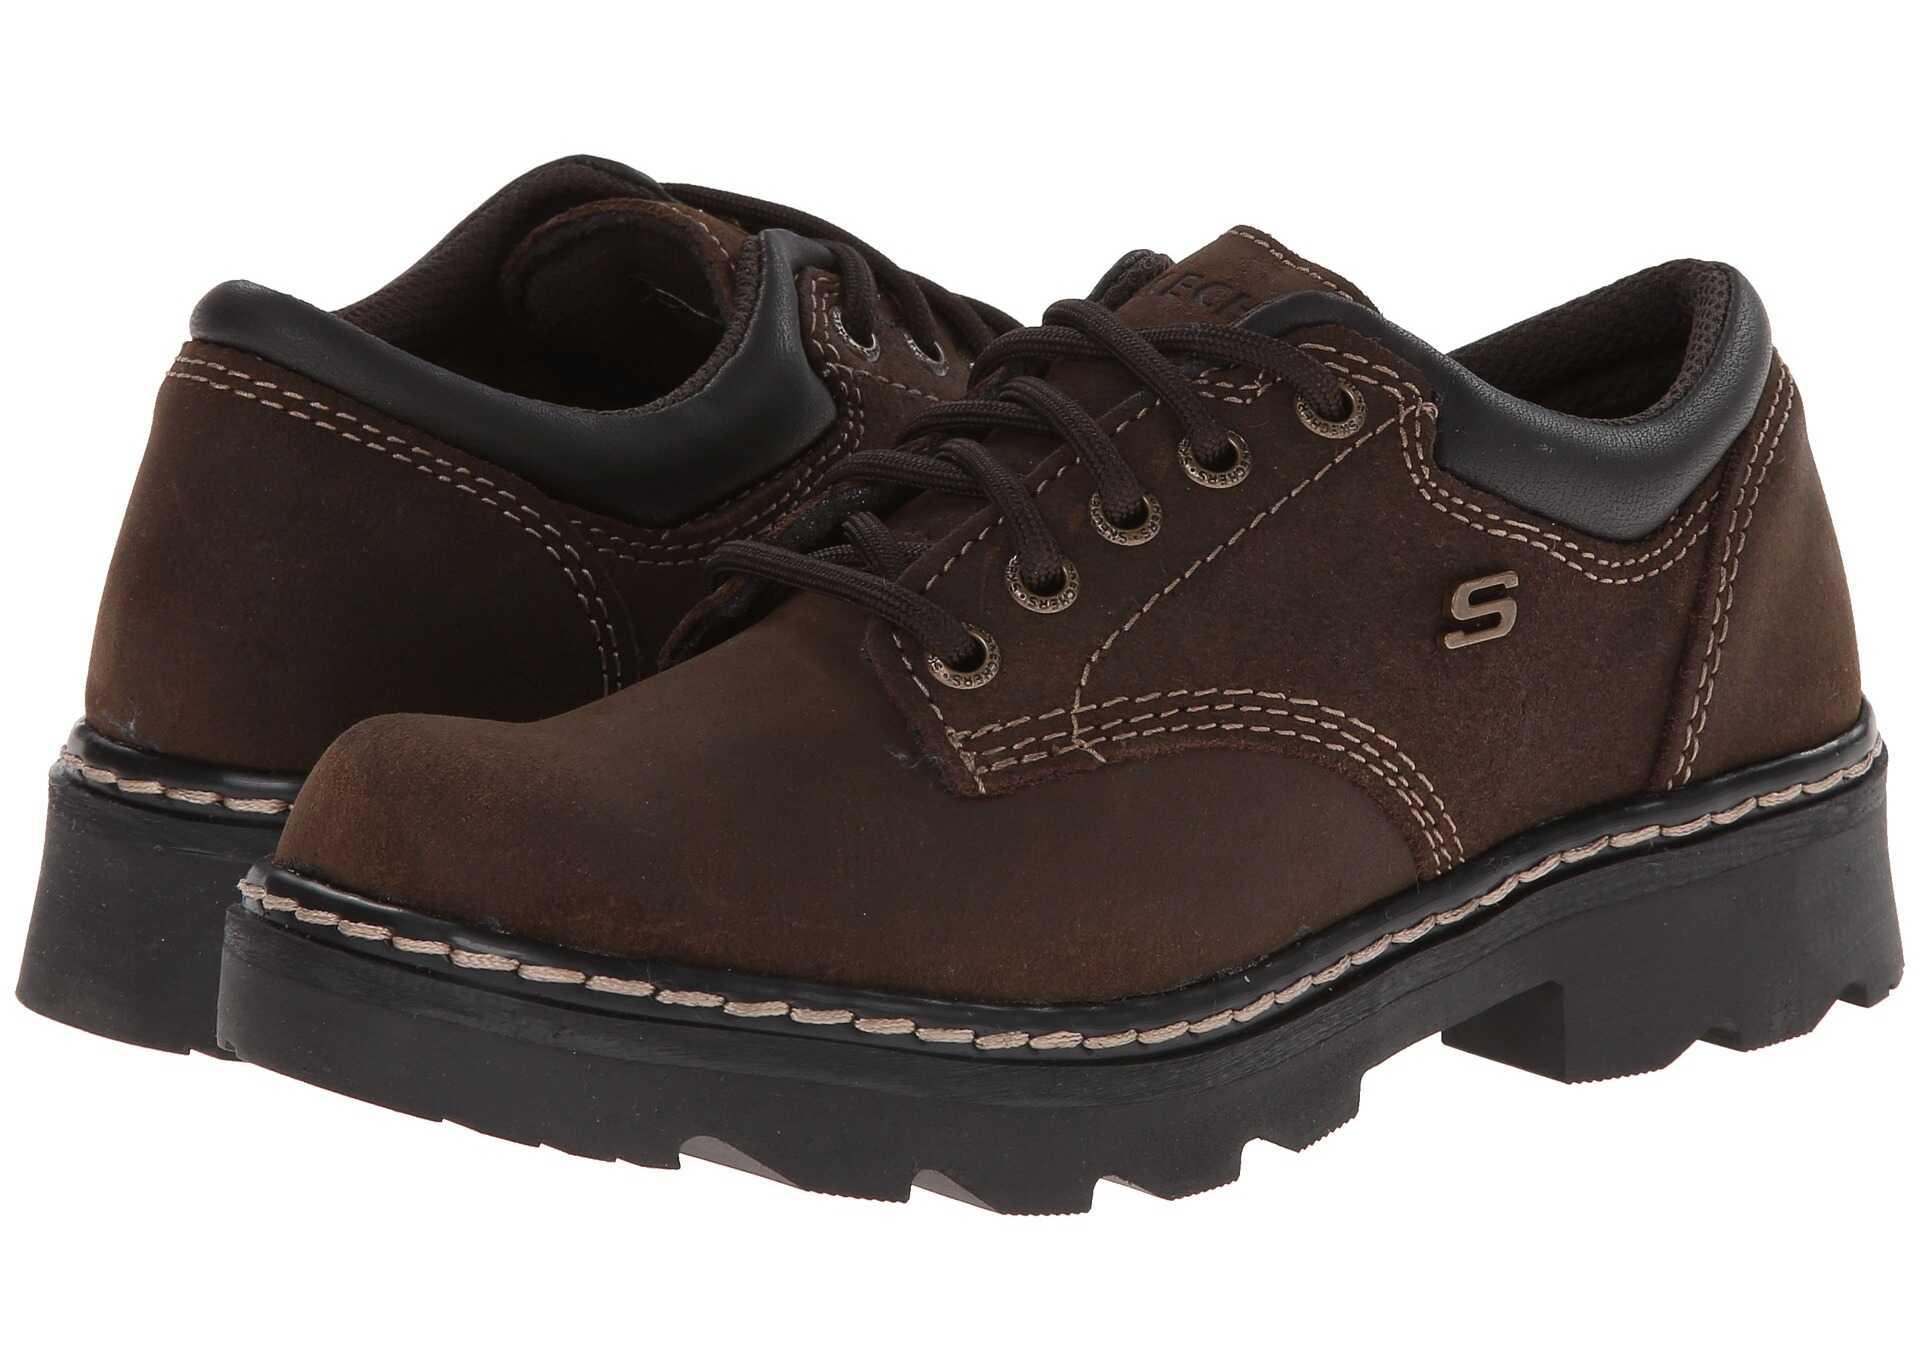 SKECHERS Parties - Mate Chocolate Scuff Resistant Leather